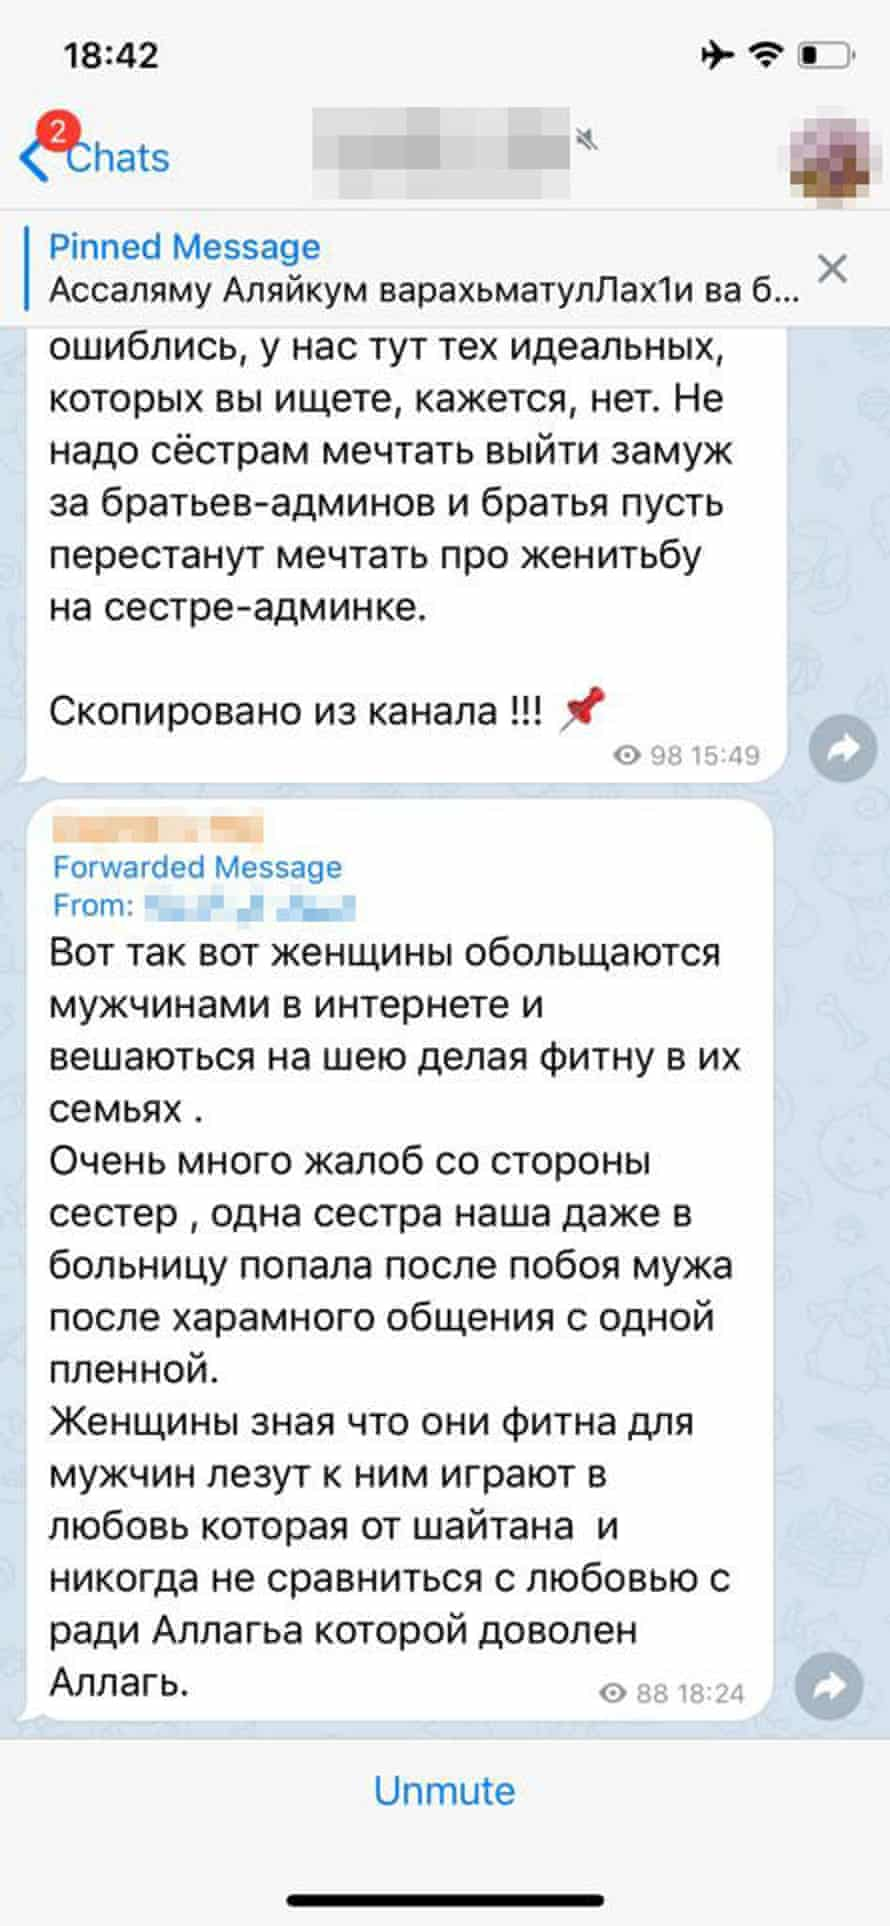 Message from Russian woman living in Idlib: 'These women flirting make men love them and be all over them [literally: hang on their necks]. They are making fitna [unrest, rebellion] in families ... I have many complaints from sisters ... One woman even went to hospital after she was beaten by her husband after he had a haram talk with one of the camp girls. Women know this is fitna for men. Yet they use them, play at love, but it's not real love.'